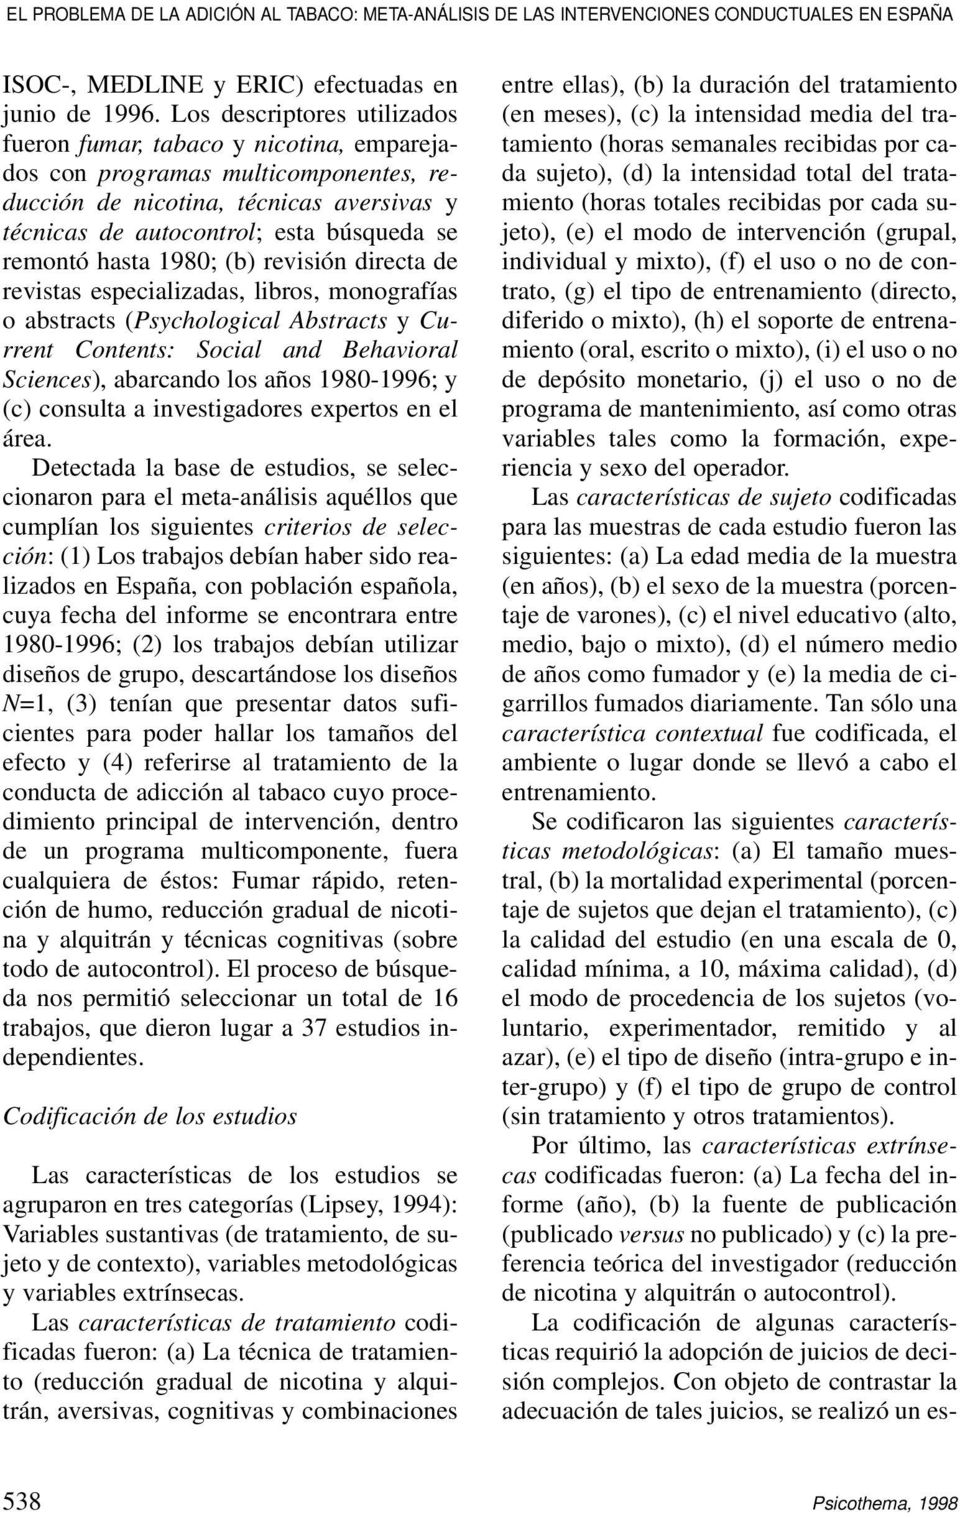 hasta 1980; (b) revisión directa de revistas especializadas, libros, monografías o abstracts (Psychological Abstracts y Current Contents: Social and Behavioral Sciences), abarcando los años